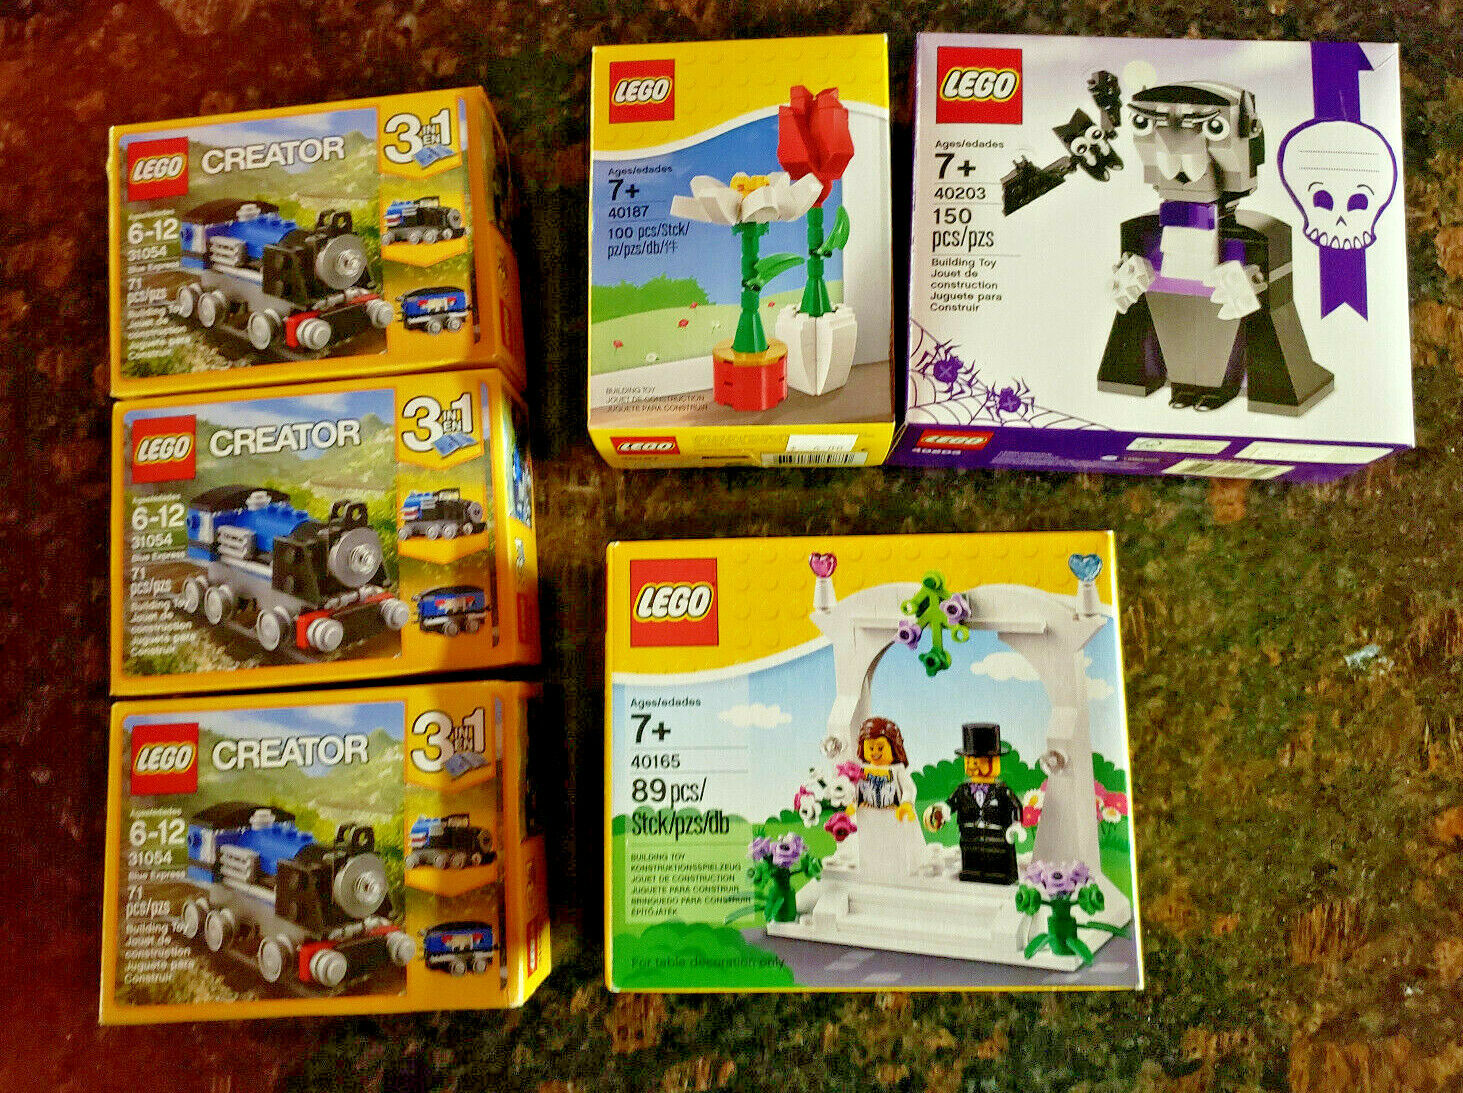 6 Lego Sets 40203 & 40165 & 40187 & 3 off  31054  New never open Sealed in Box.